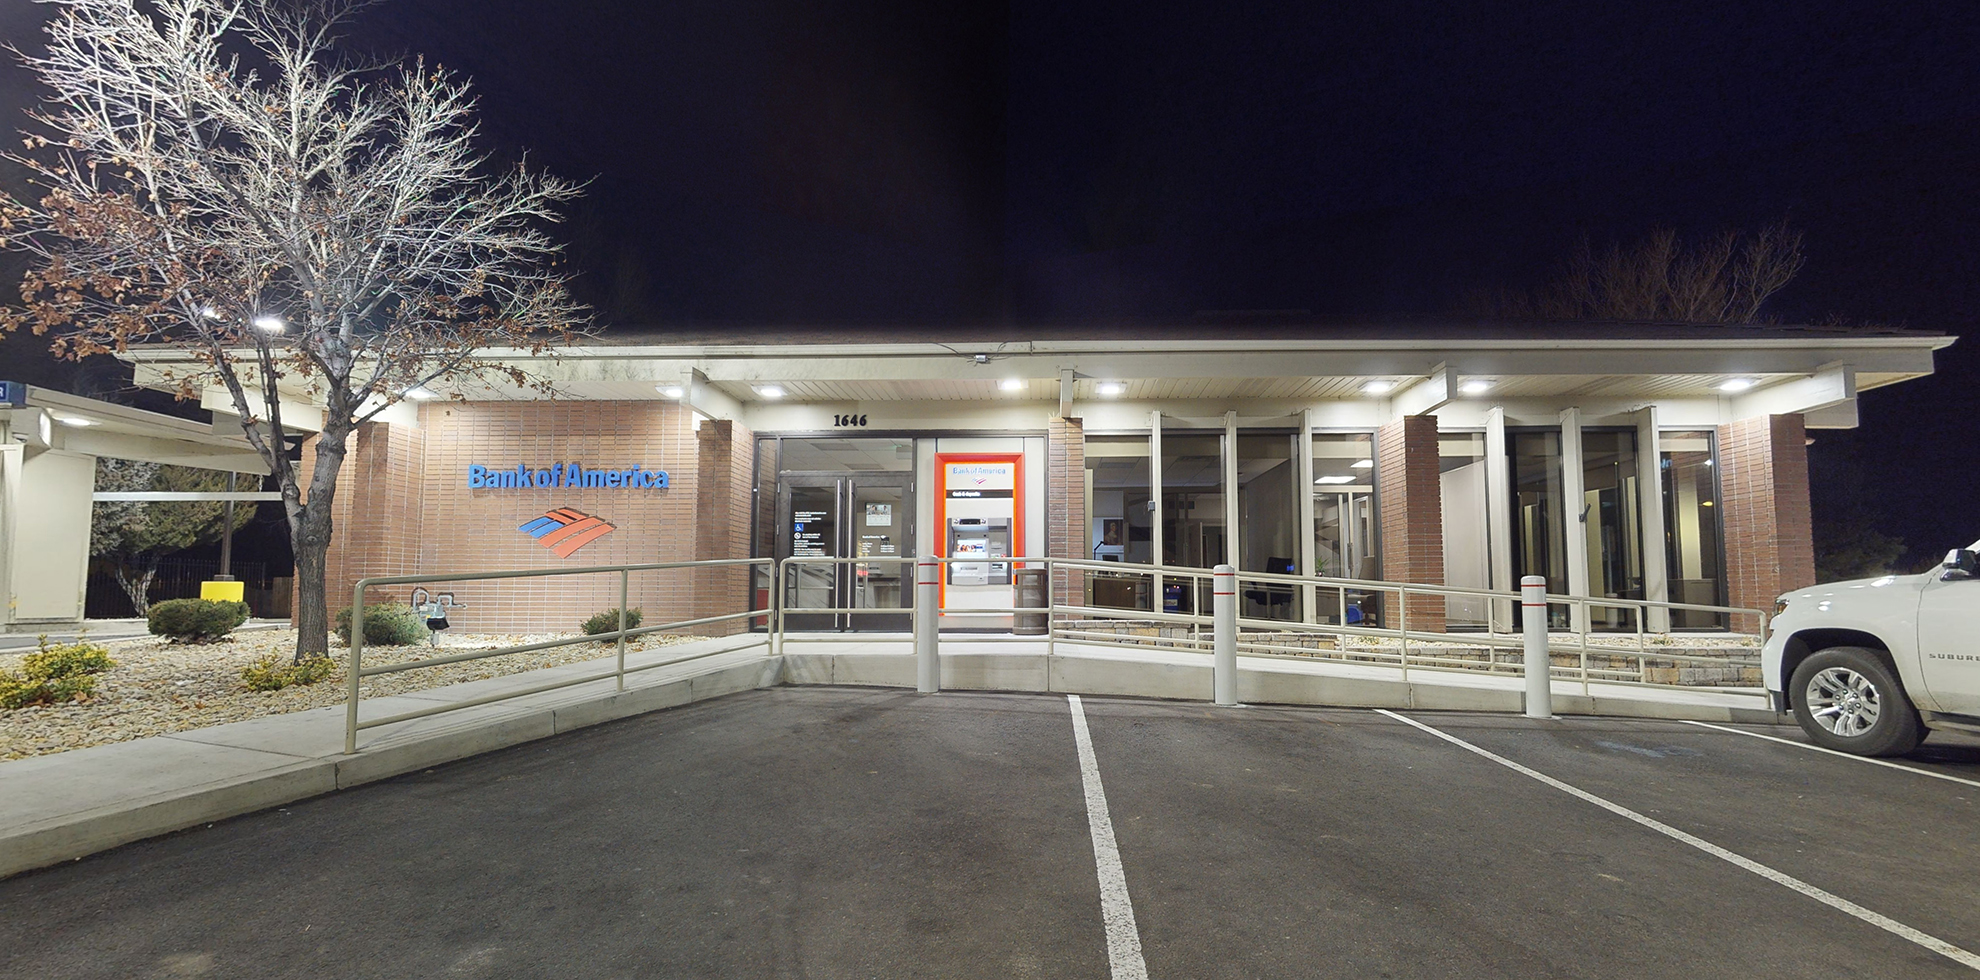 Bank of America financial center with drive-thru ATM | 1646 US Highway 395 N, Minden, NV 89423